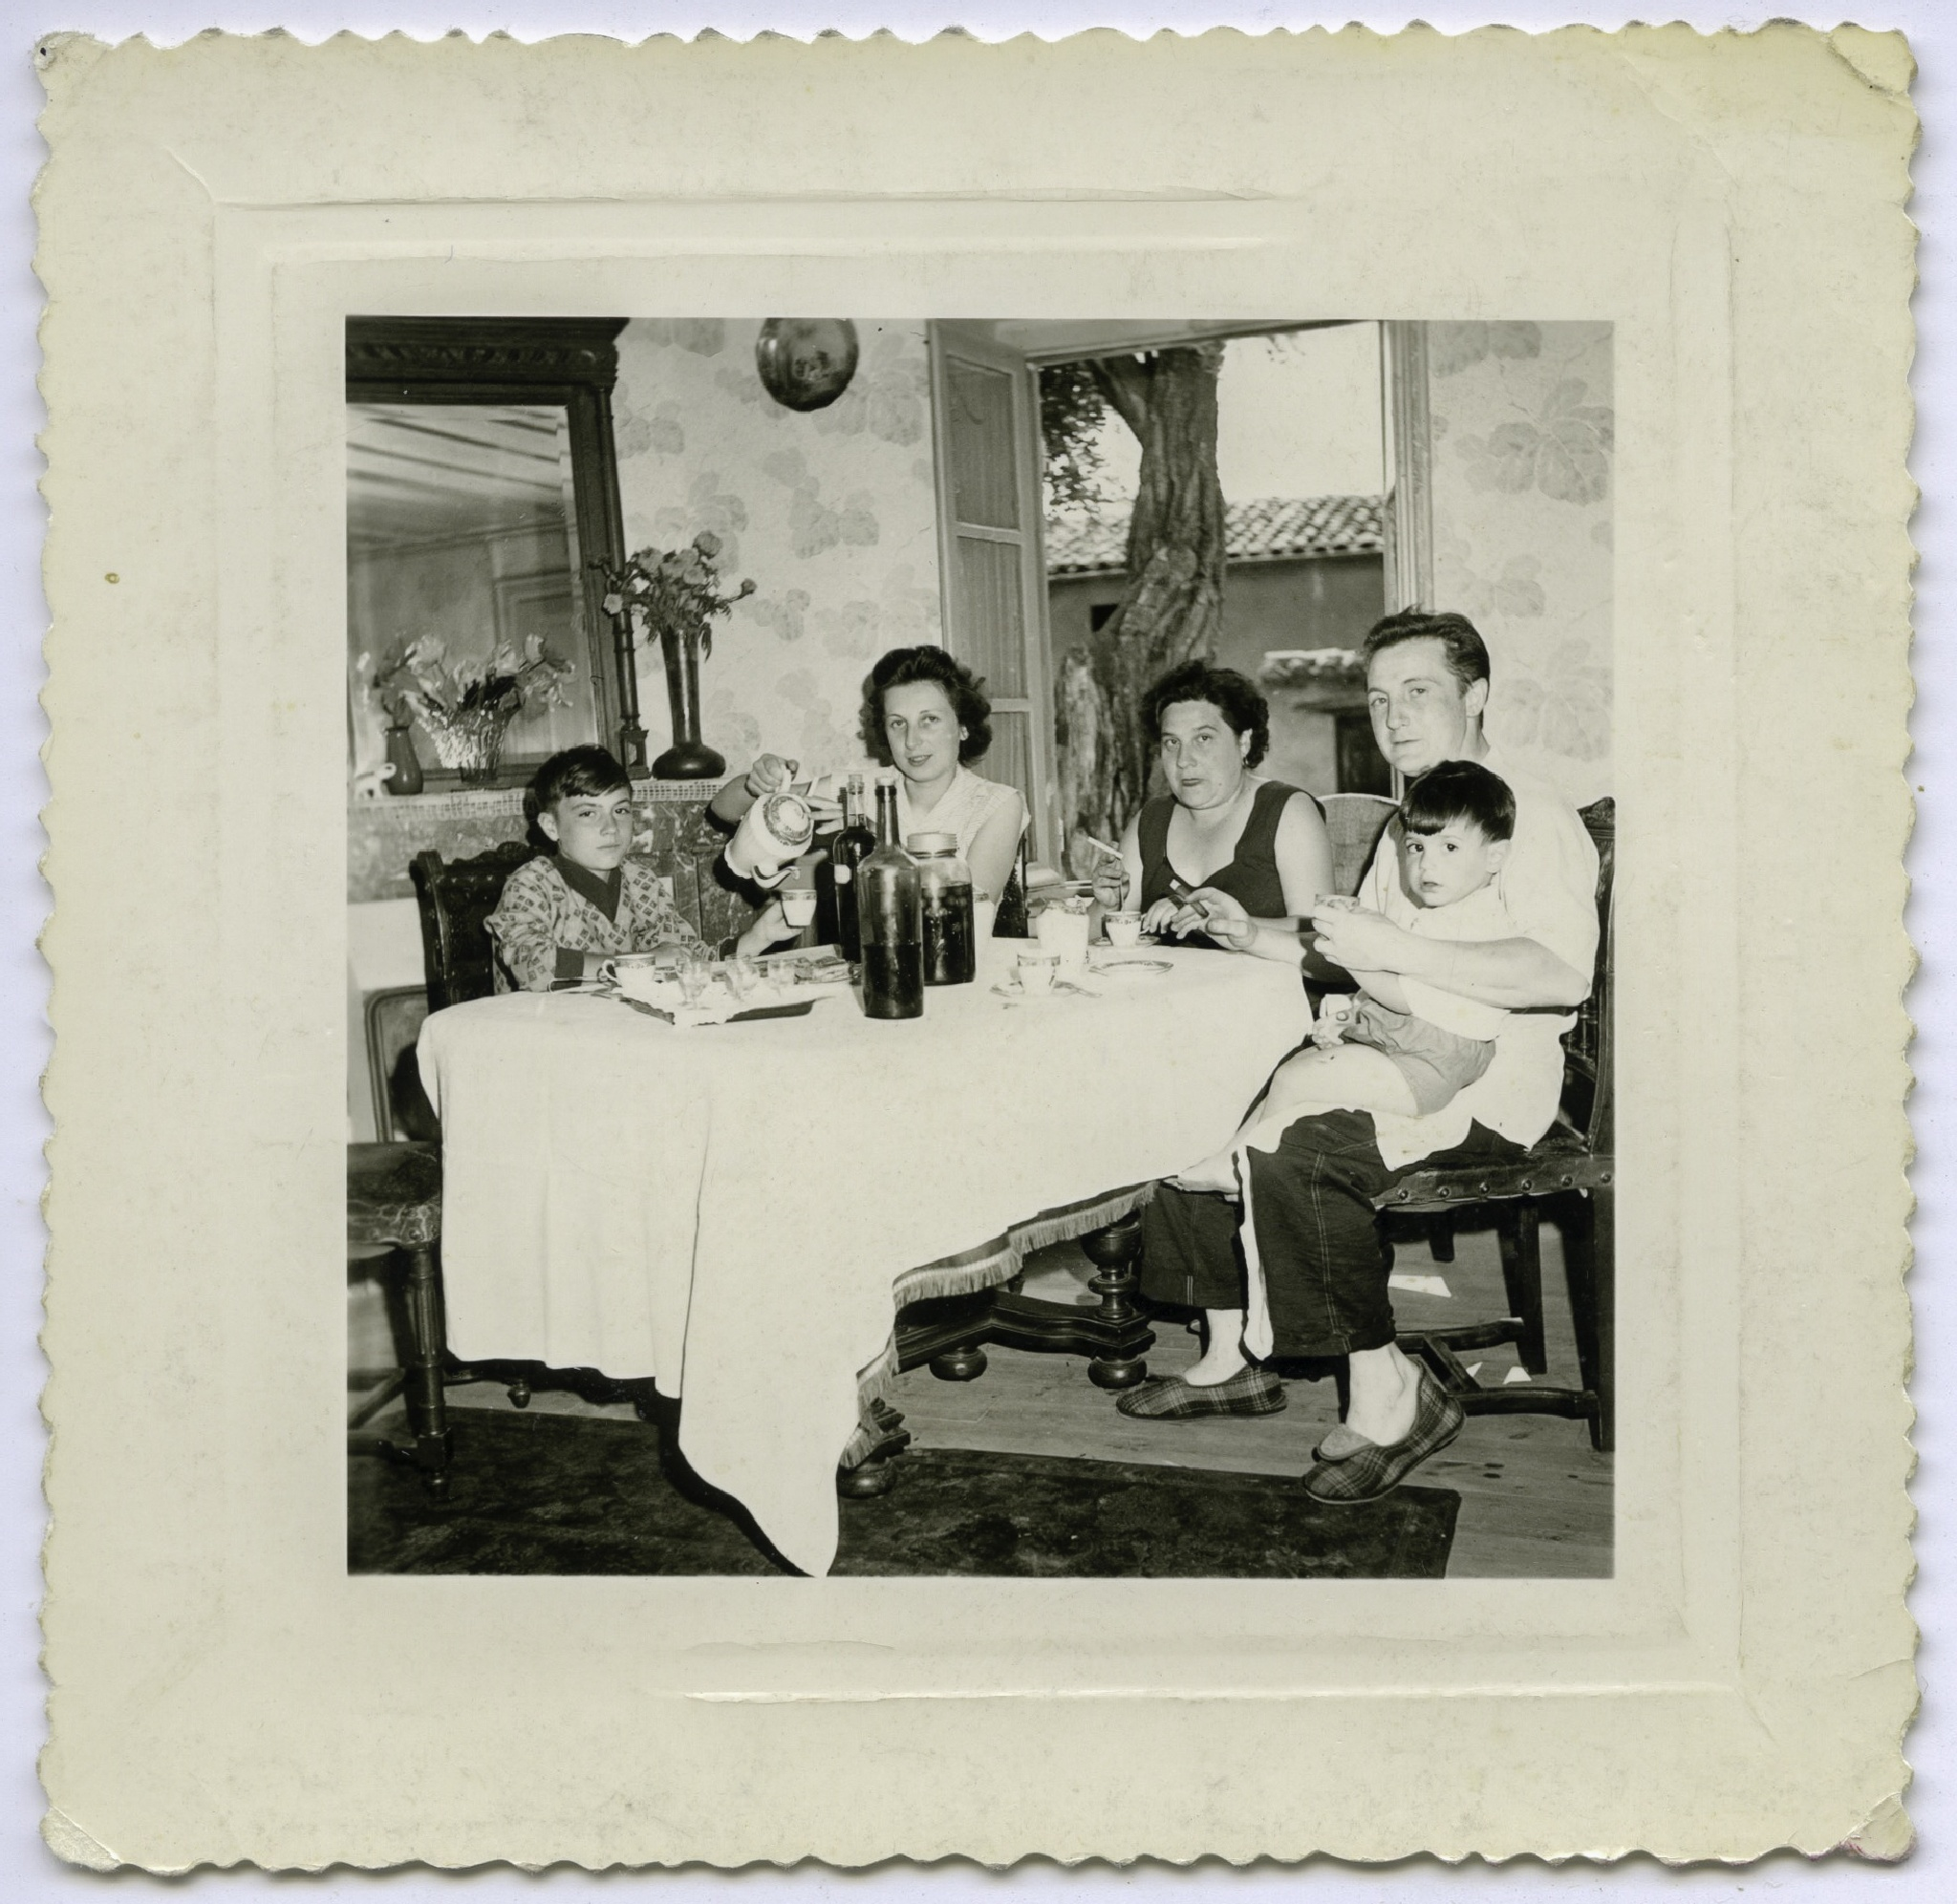 French Sunday noon meal in the 1950s  by Martine de Lajudie